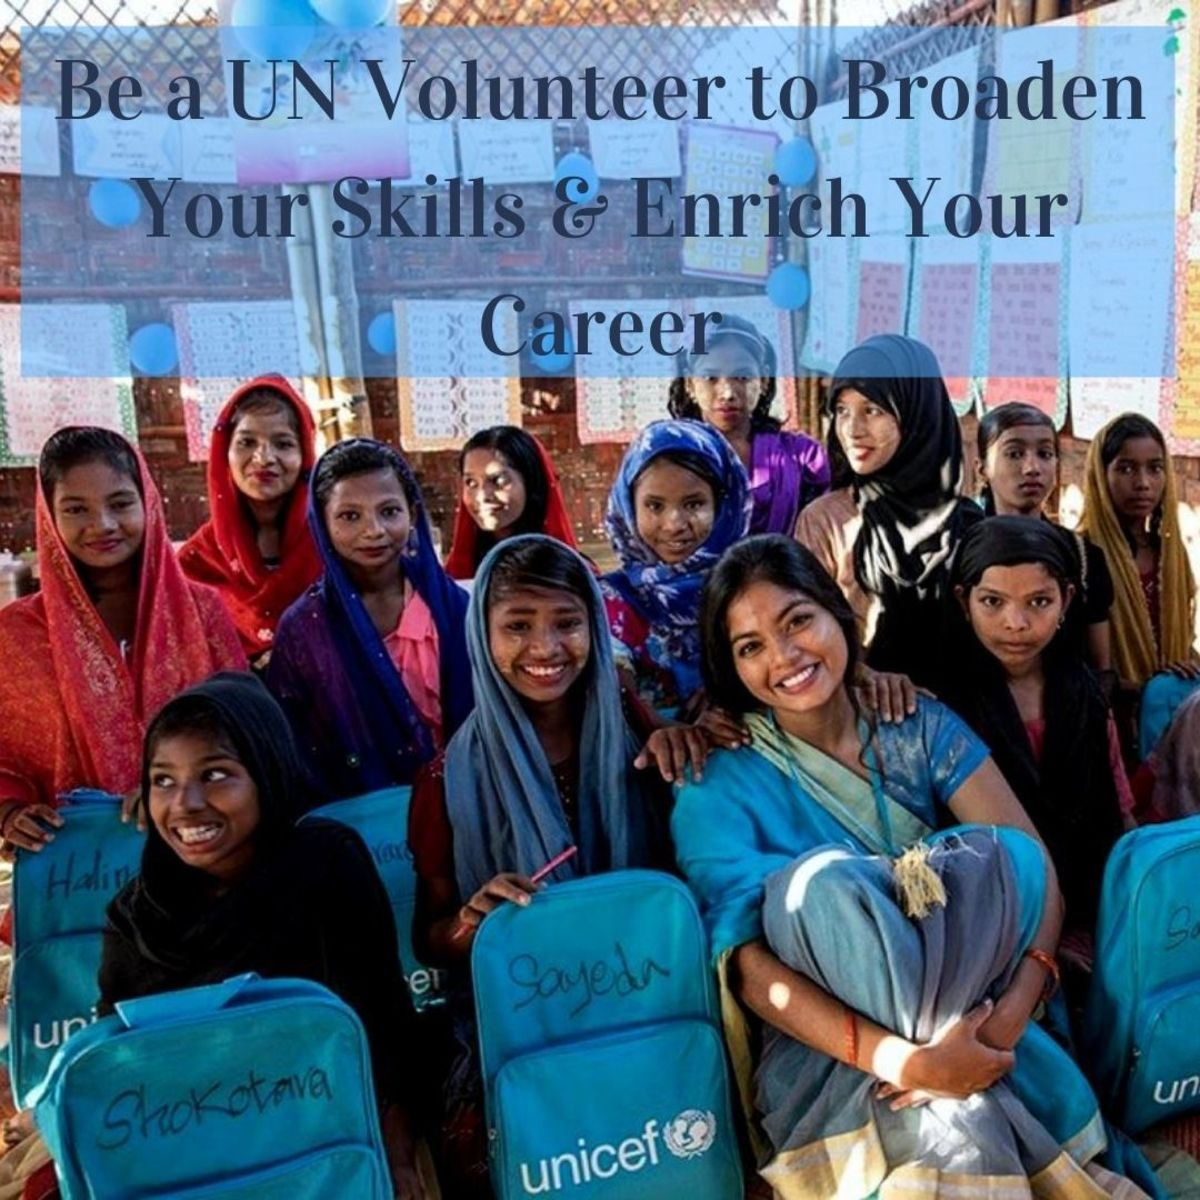 As a United Nations Volunteer (UNV) you can also work with refugee children.